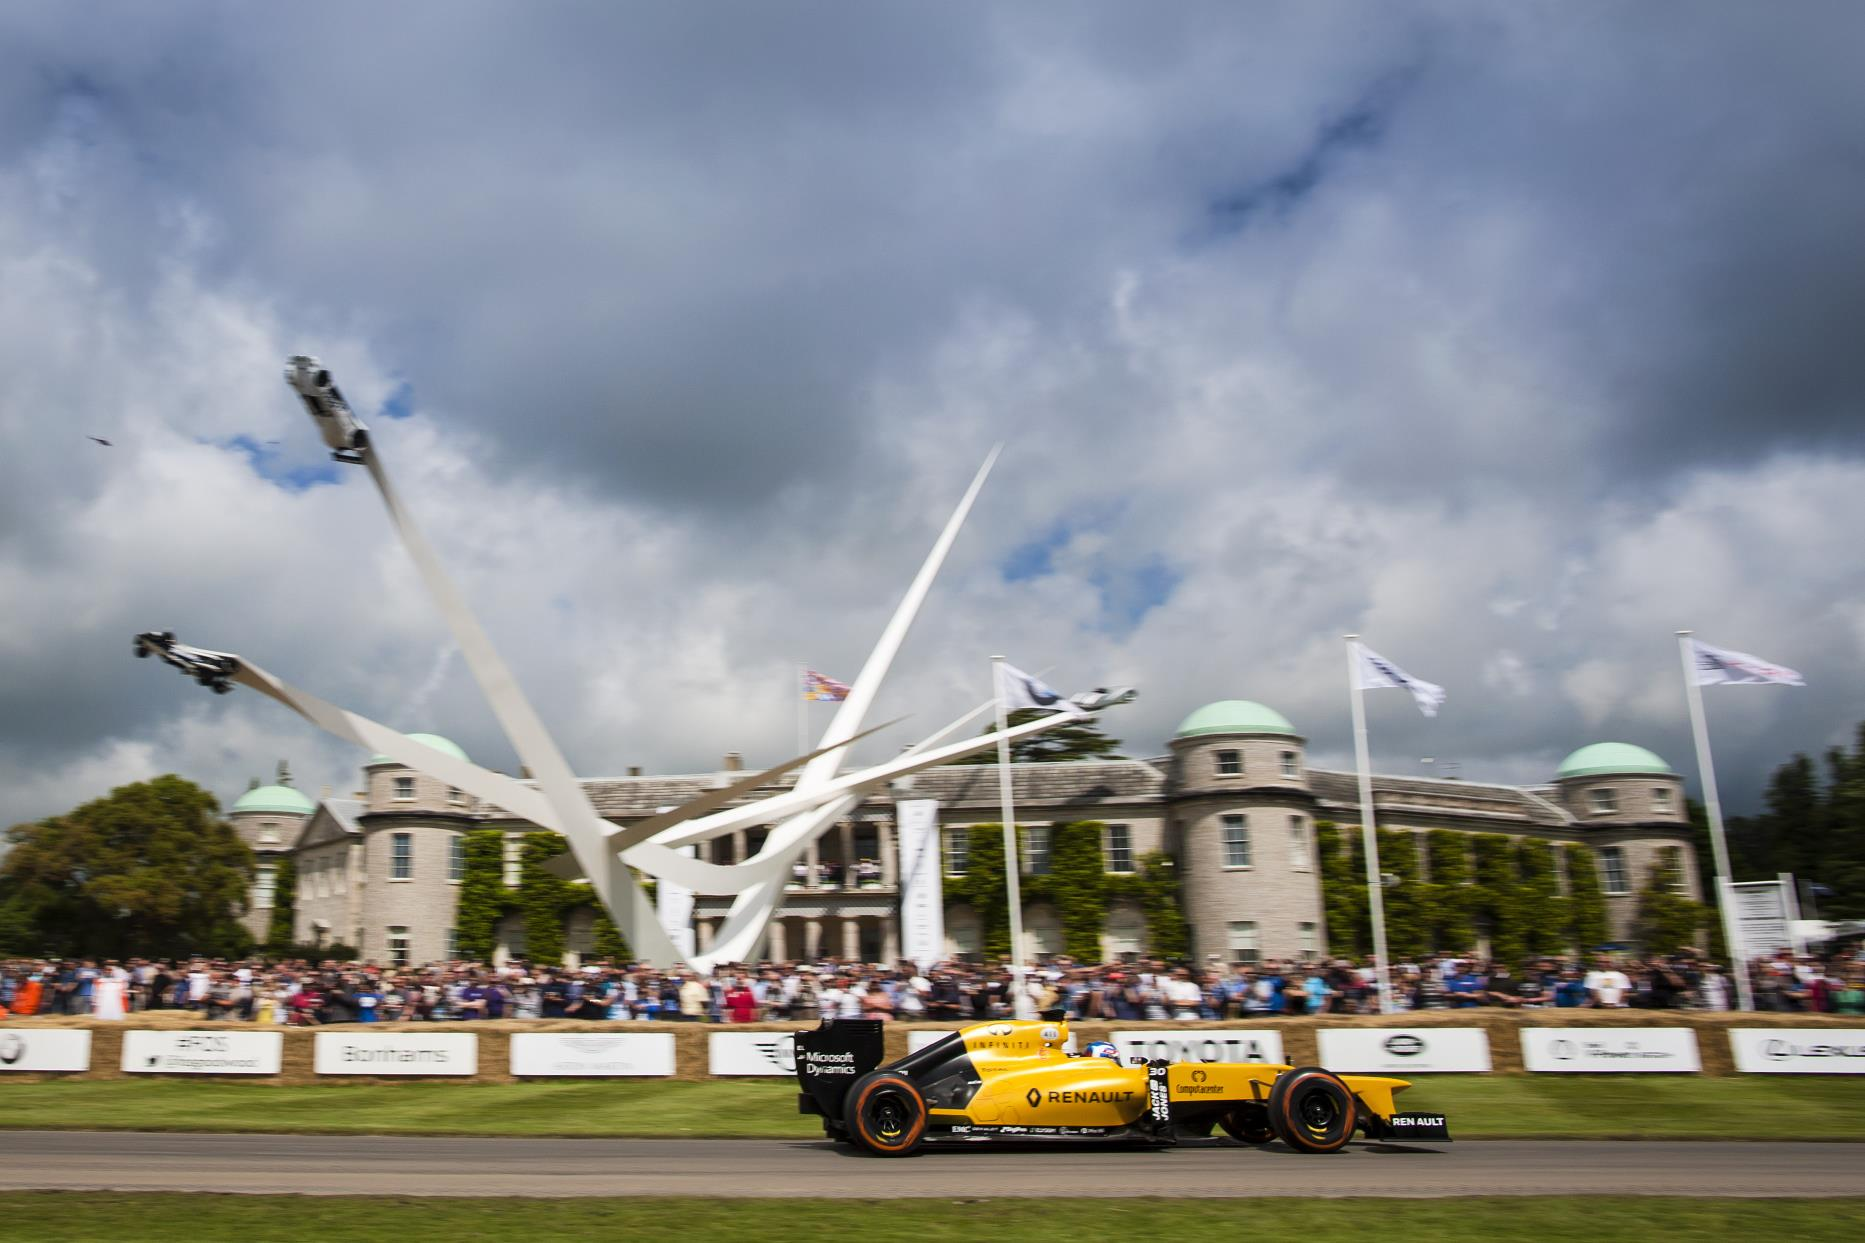 Goodwood-Festival-of-Speed-2017-large-3